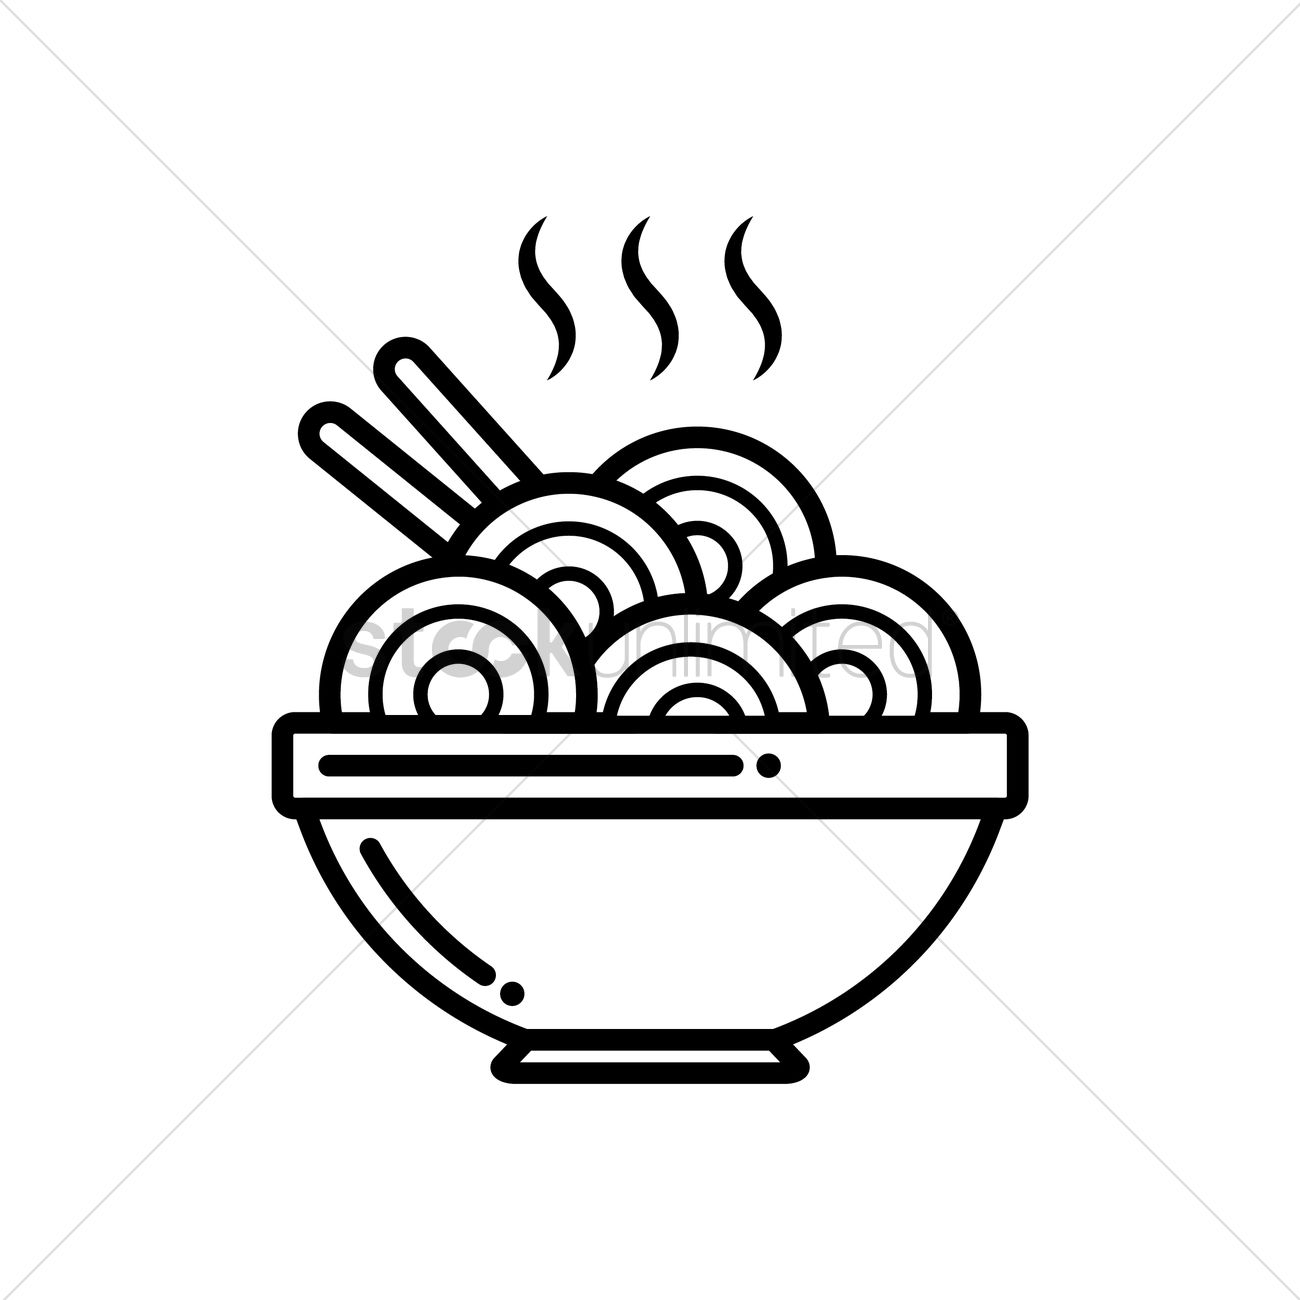 Steamy bowl of hot noodles Vector Image.